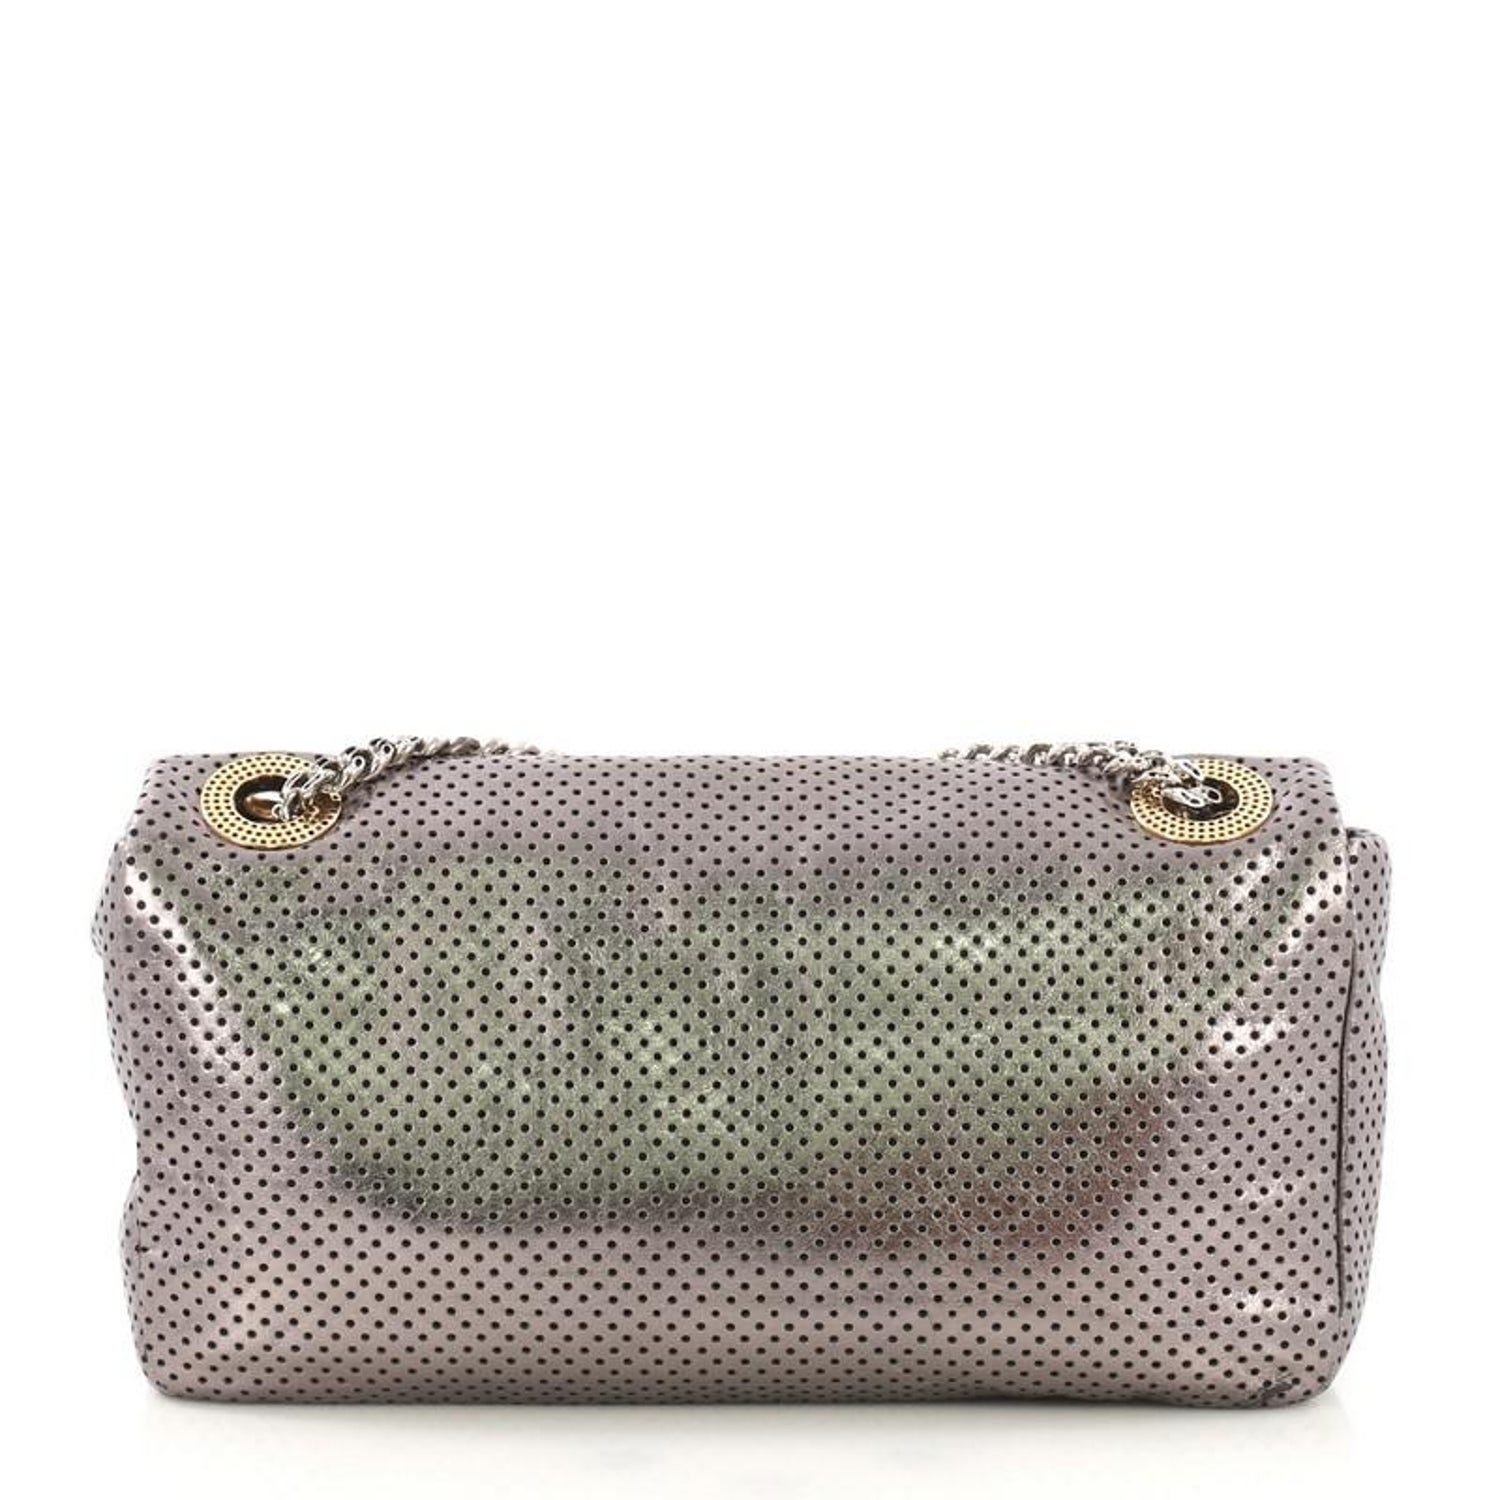 d87bc744224b Chanel Drill Flap Bag Perforated Leather Medium For Sale at 1stdibs